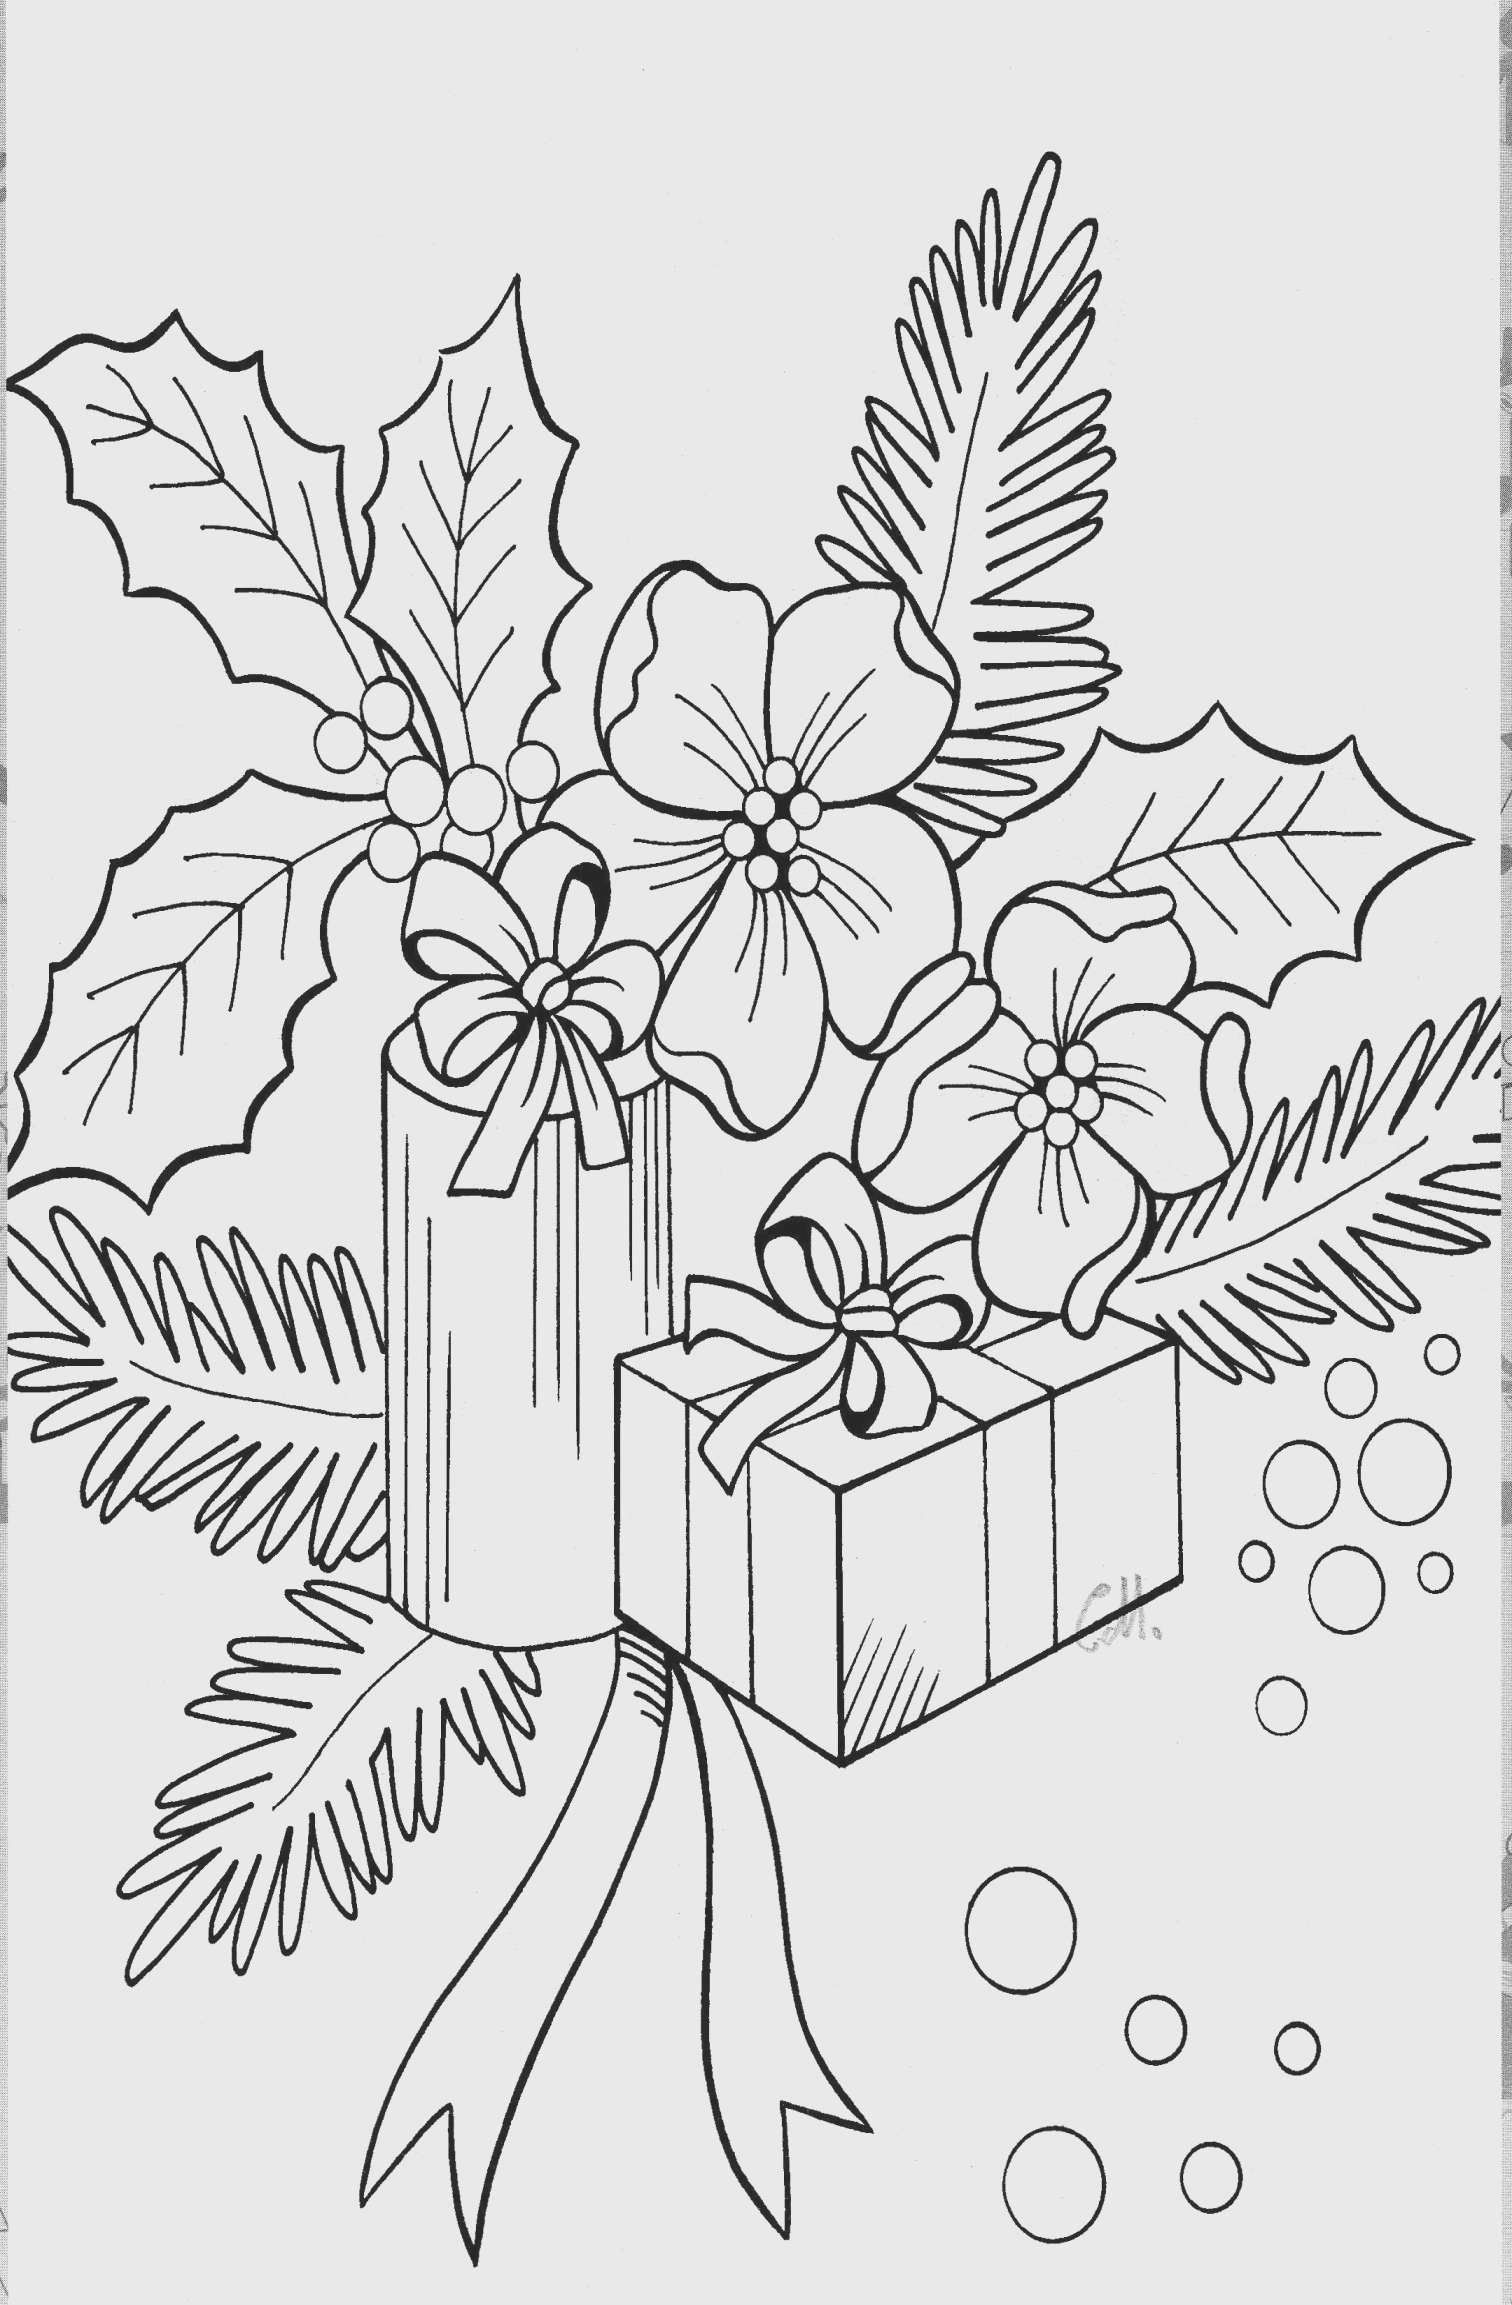 Coloring Activities Meaning Fresh Candy Cane To Color Toiyeuemz Coloring Pages Christmas Coloring Pages Christmas Colors